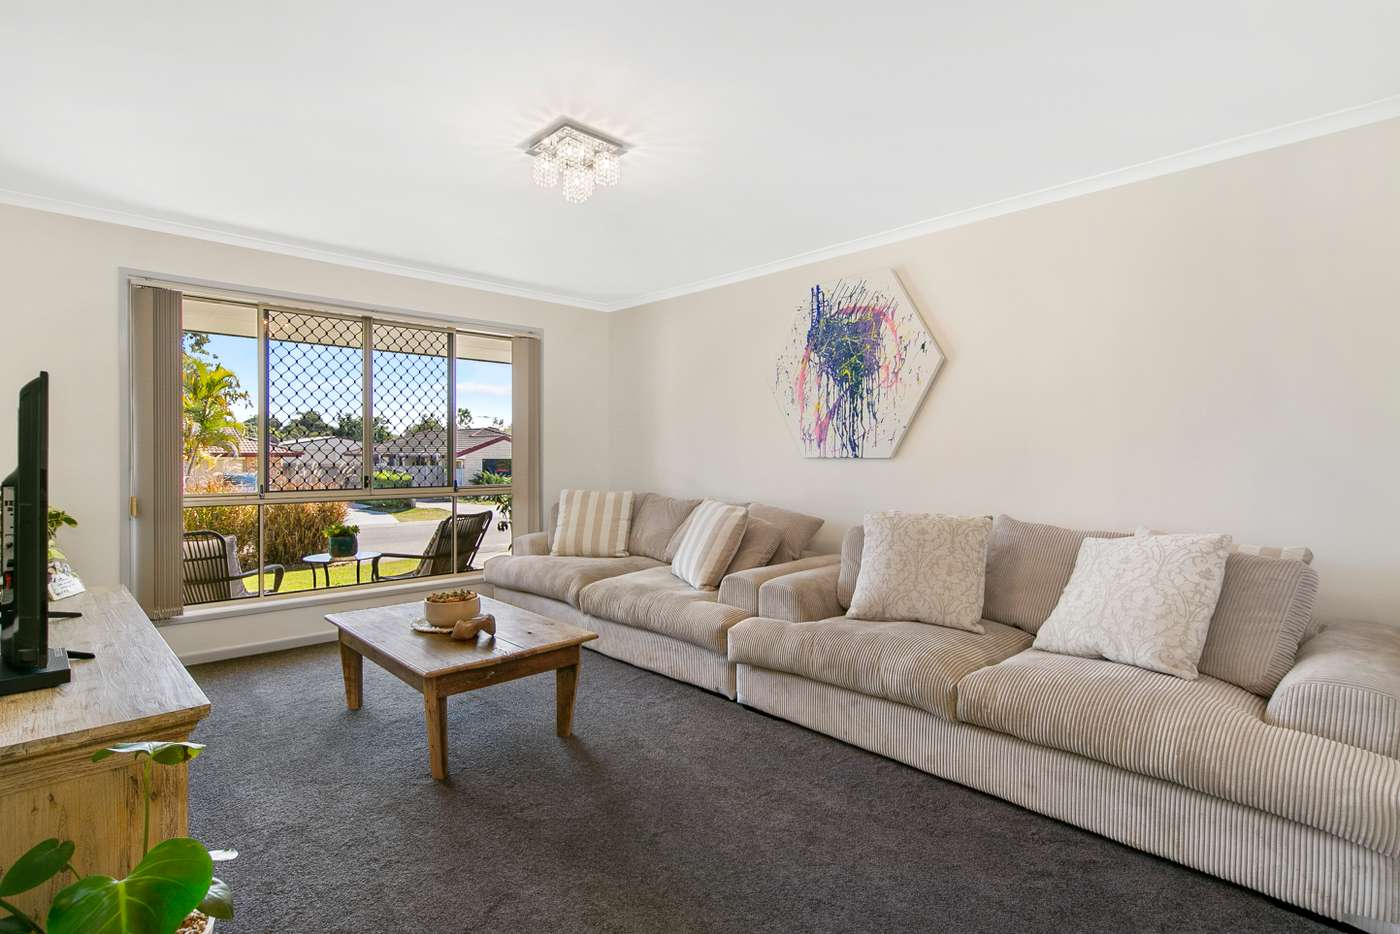 Sixth view of Homely house listing, 18 Boxwood Court, Burpengary QLD 4505